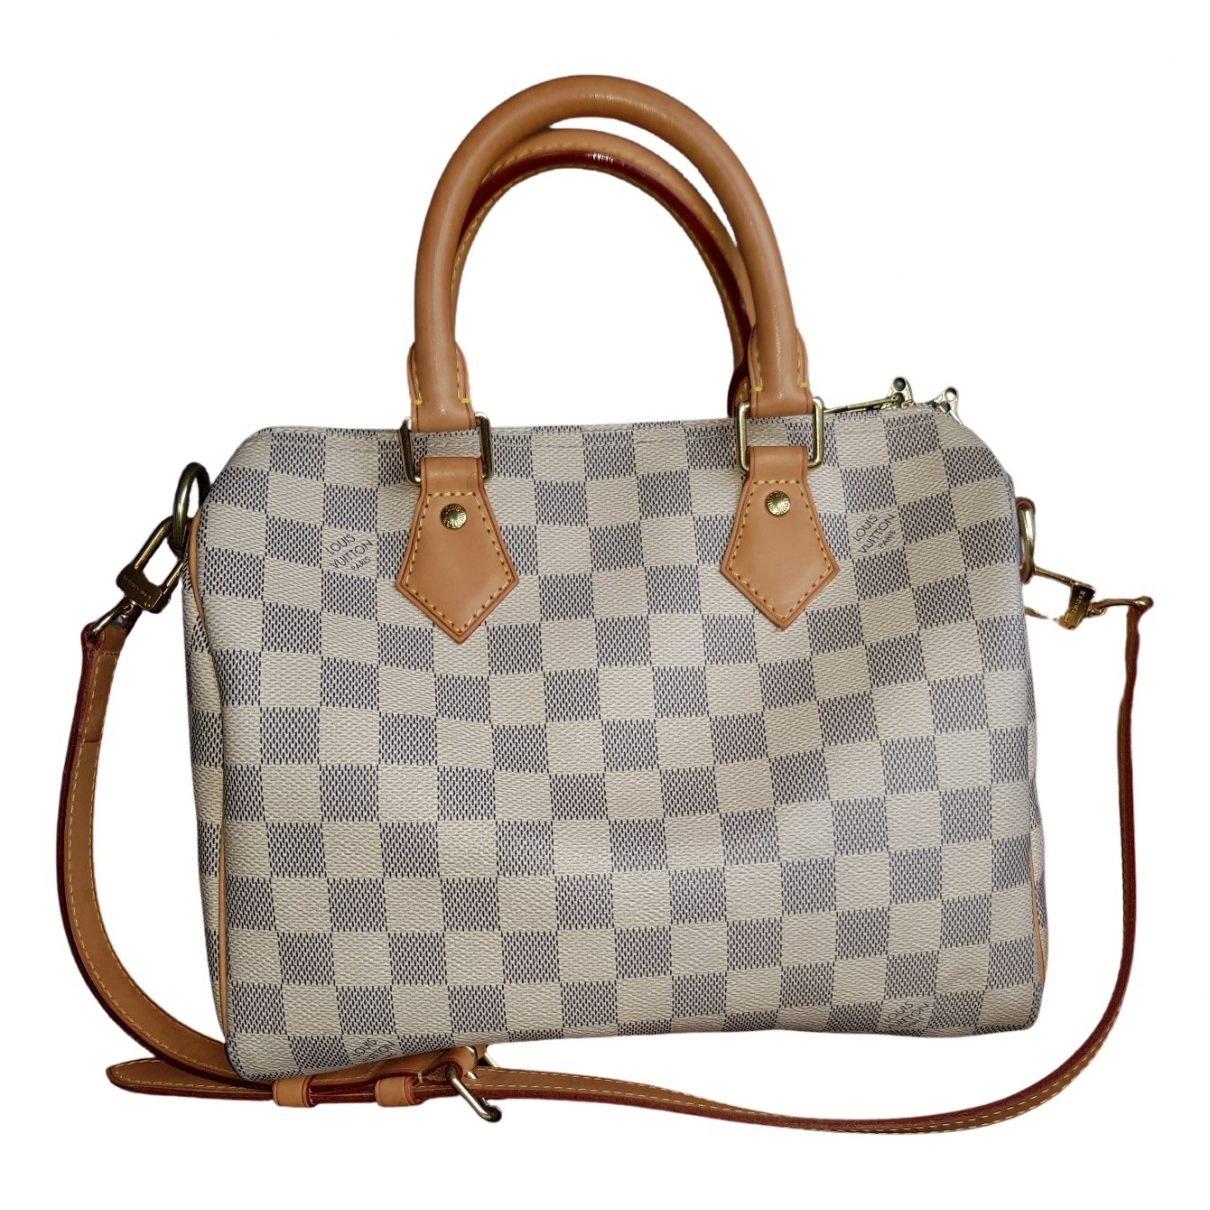 Louis Vuitton Speedy Bandoulière Ecru Cloth handbag for Women N